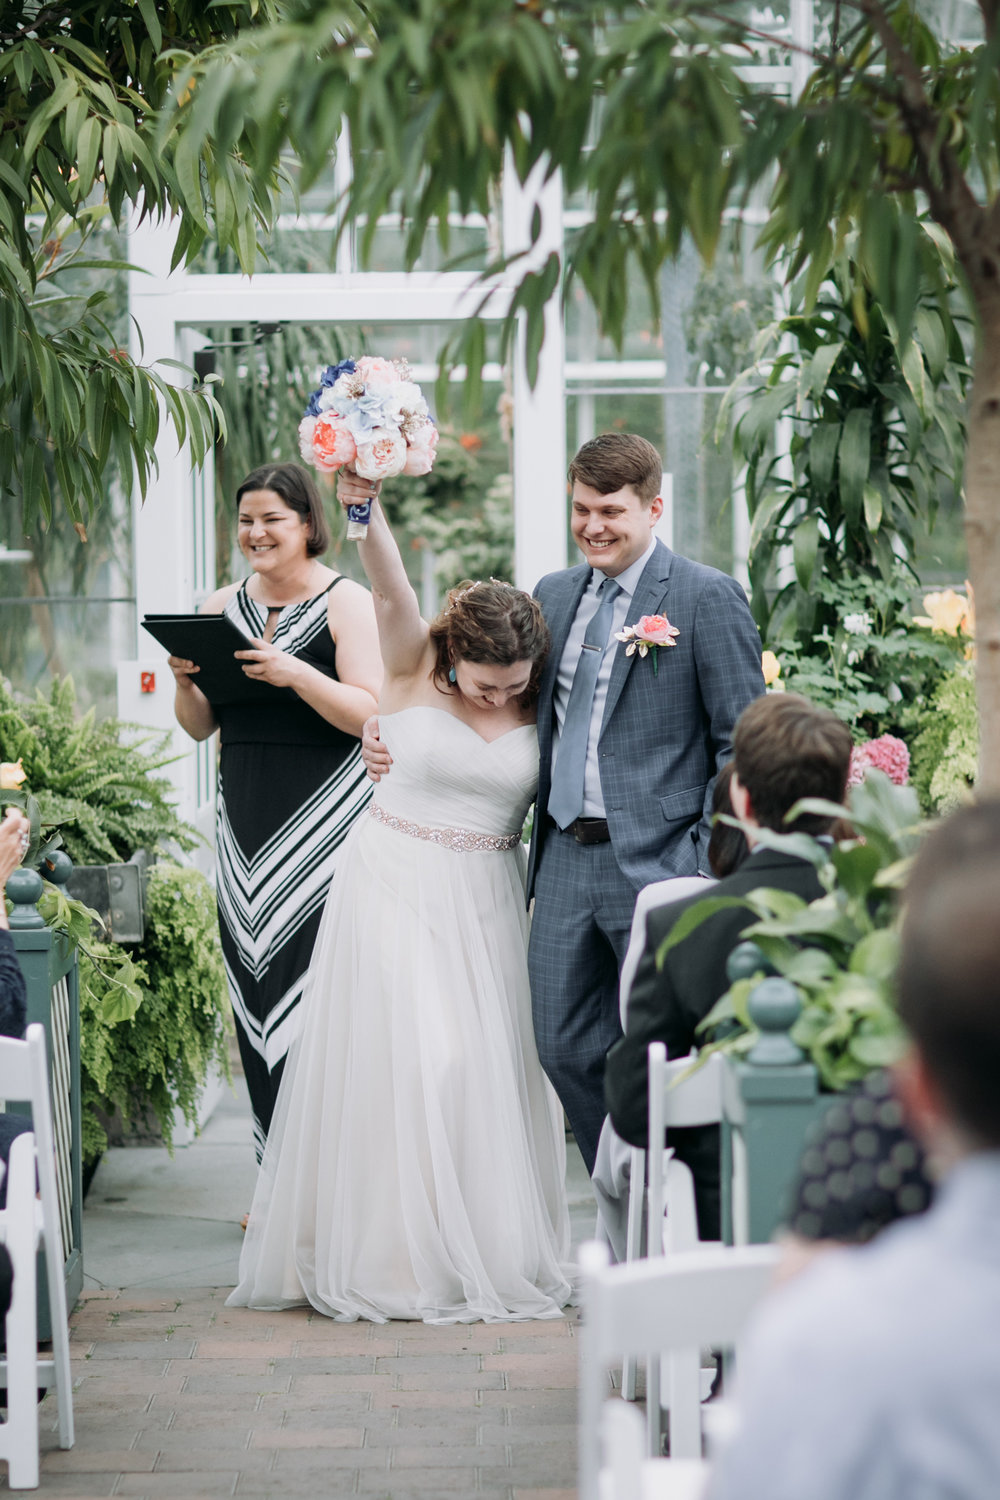 Volunteer Park Conservatory Wedding Ceremony